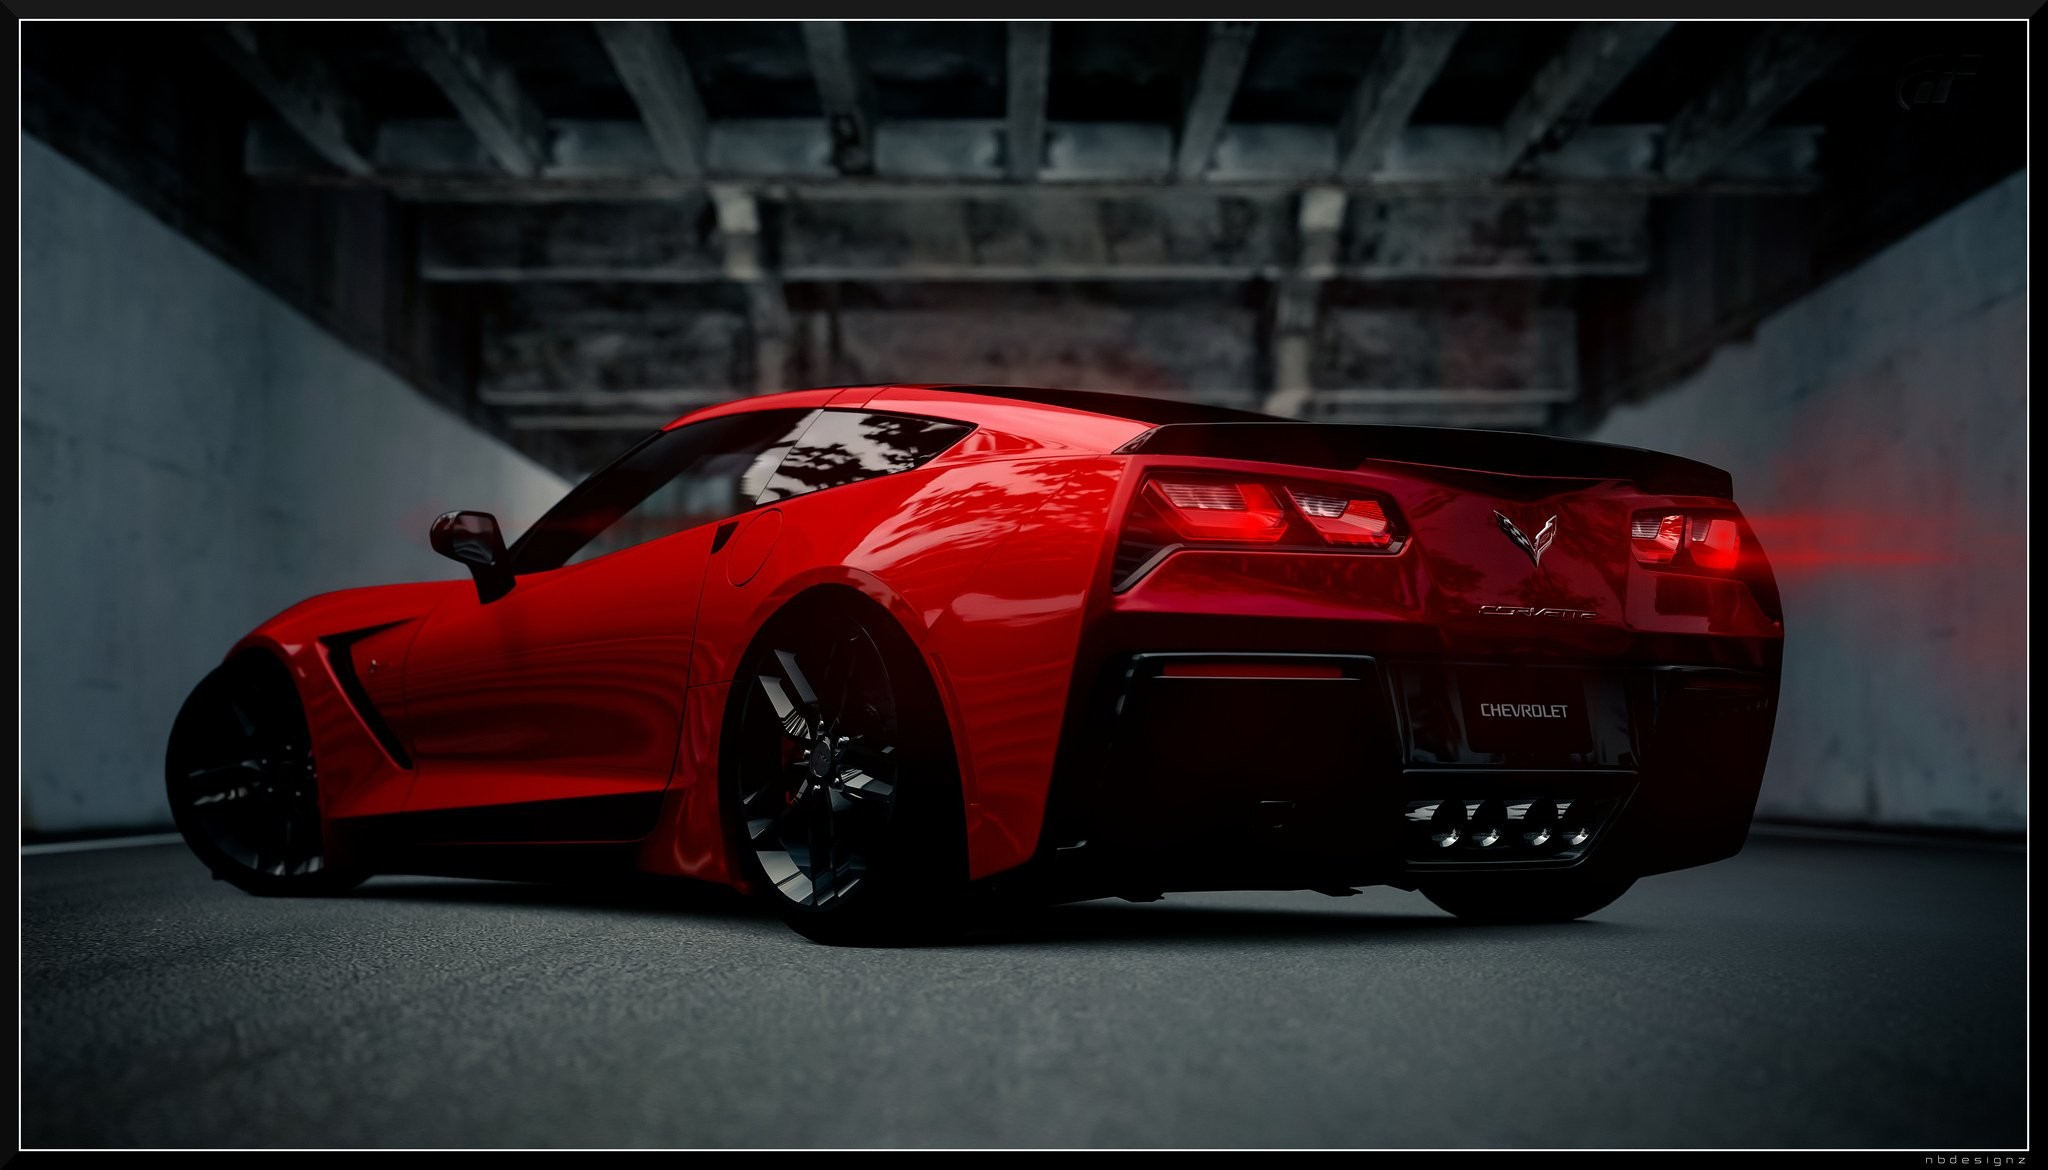 2048x1170 Images of Corvette Wallpaper Border - #SC ...